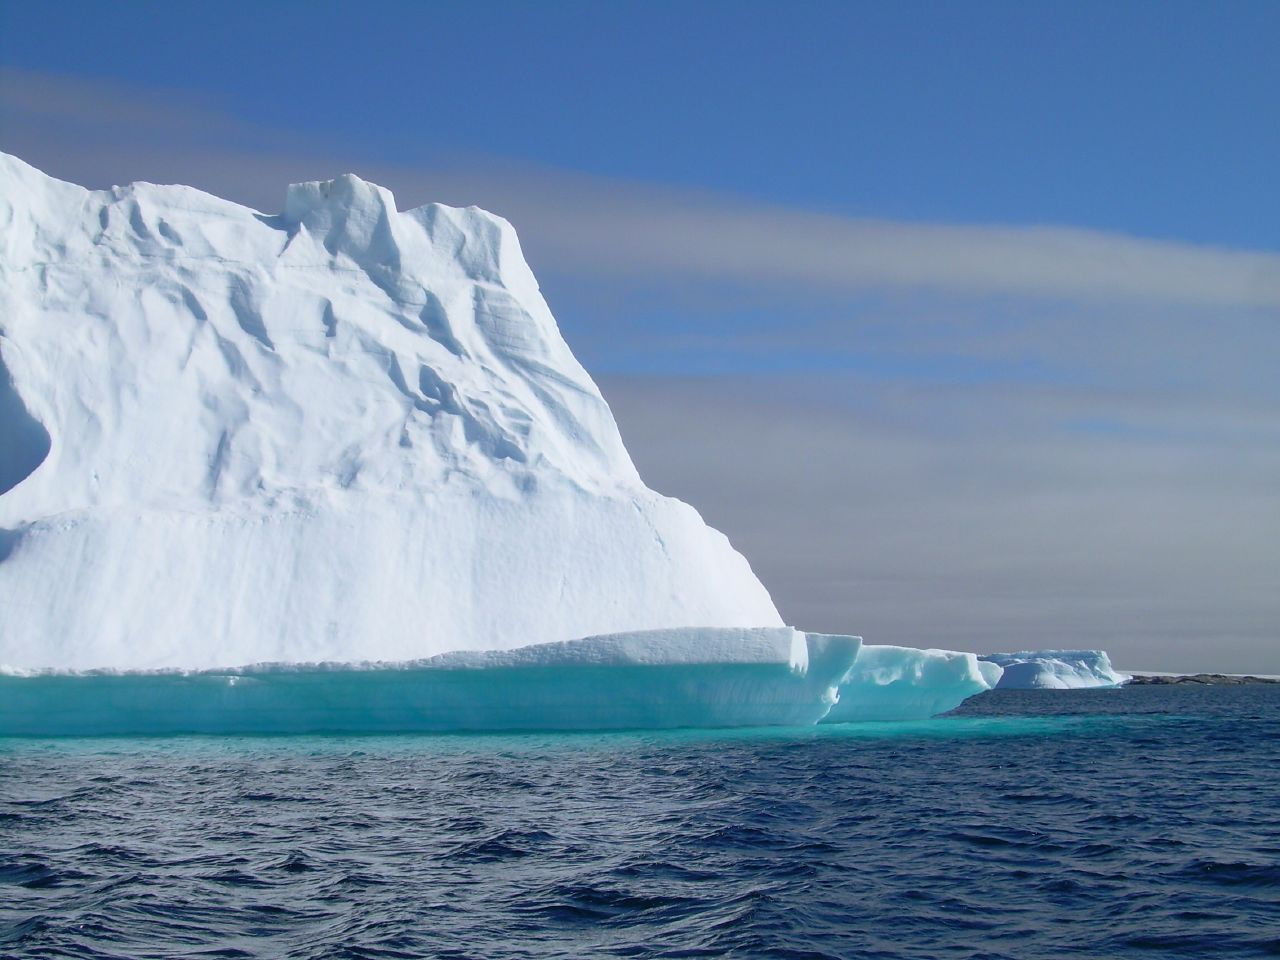 Where to Travel Based on Your Zodiac: Aries - Antartica